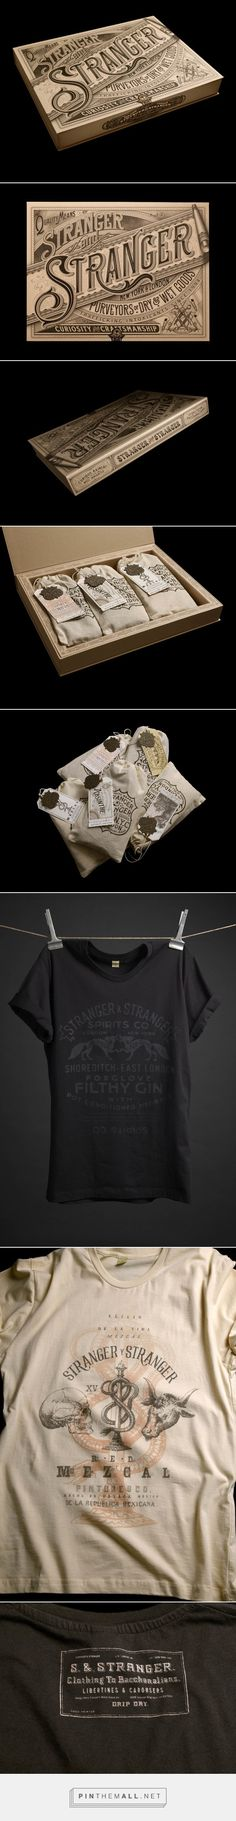 Vintage T-Shirt Packaging Design by Stranger & Stranger